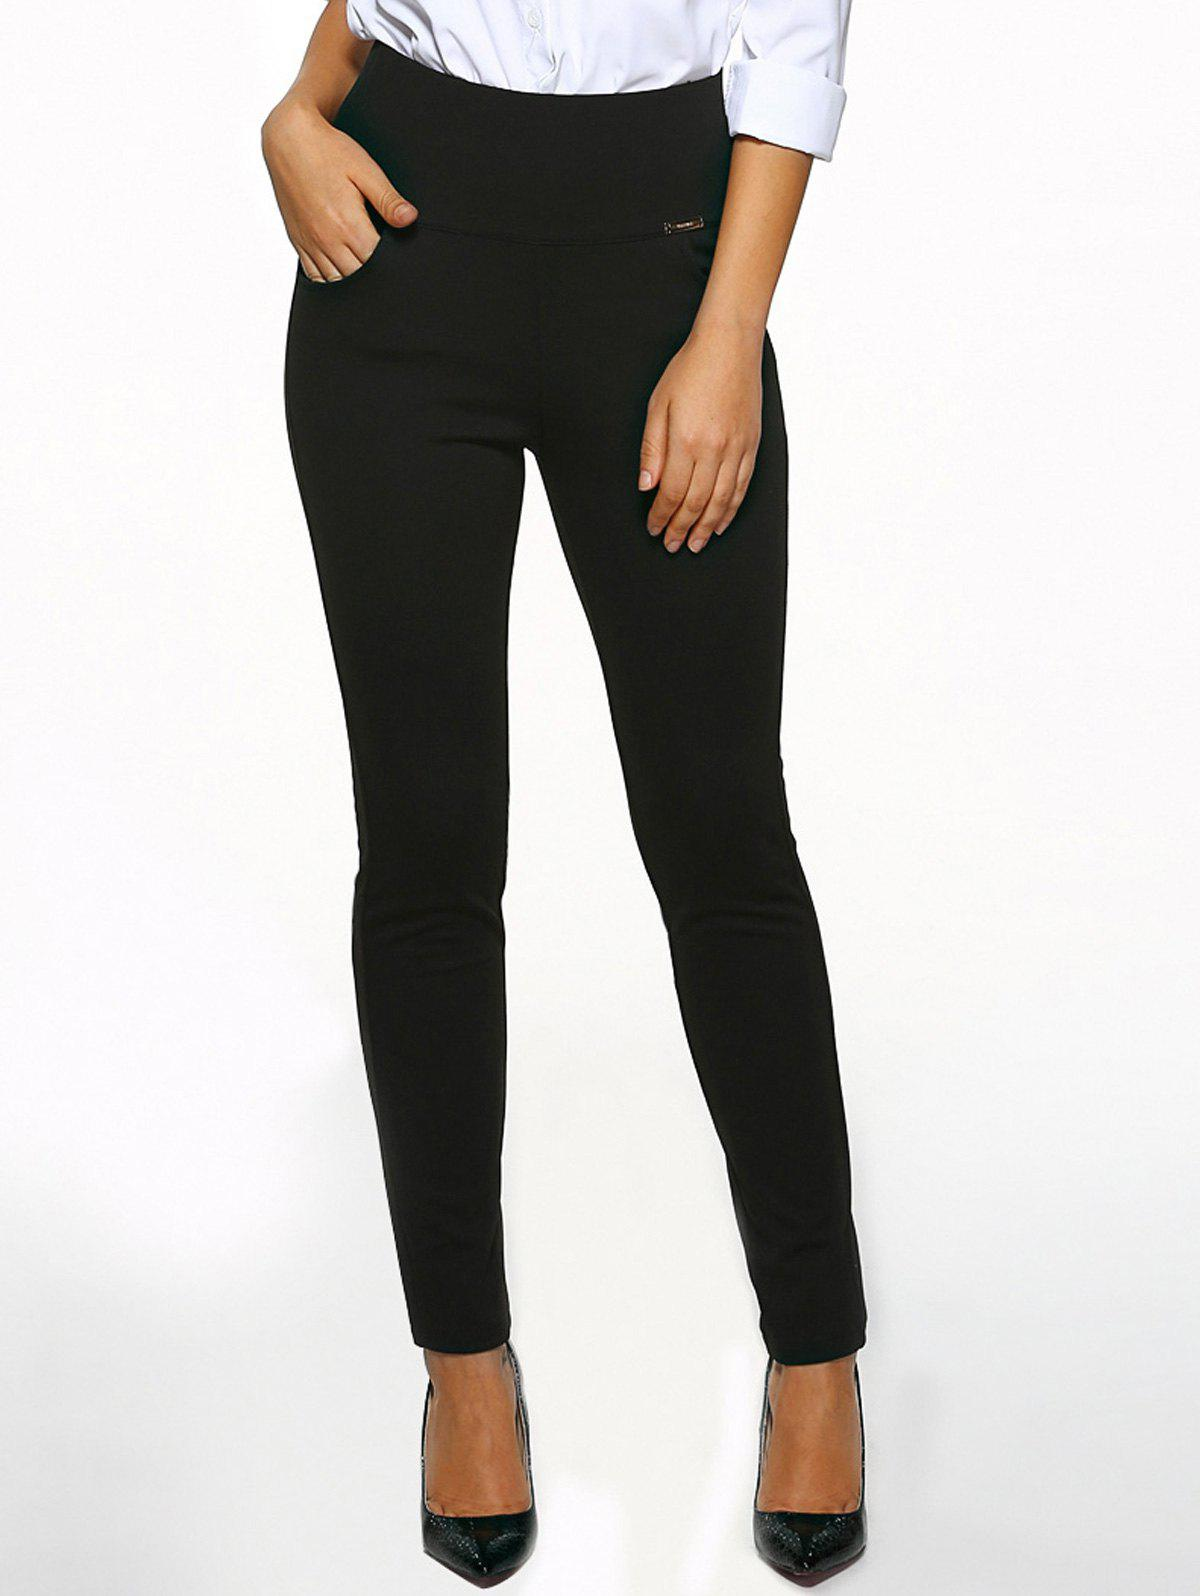 High Waist Cigarette Skinny Pants - BLACK S